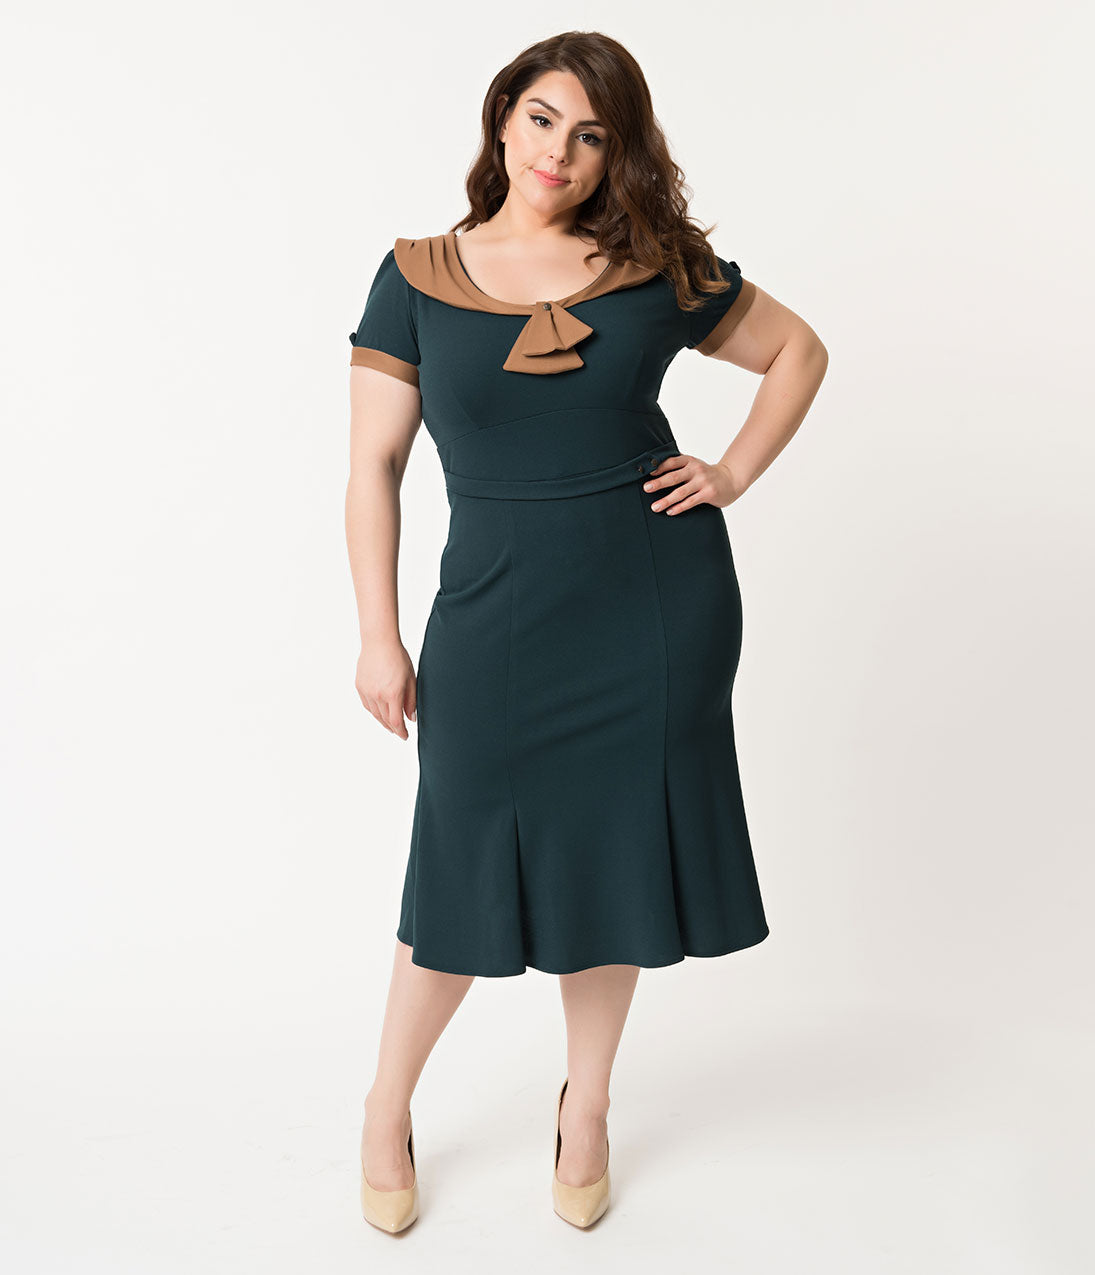 1930s Art Deco Plus Size Dresses | Tea Dresses, Party Dresses Stop Staring Plus Size 1940S Style Forest Green  Brown Army Girl Wiggle Dress $172.00 AT vintagedancer.com